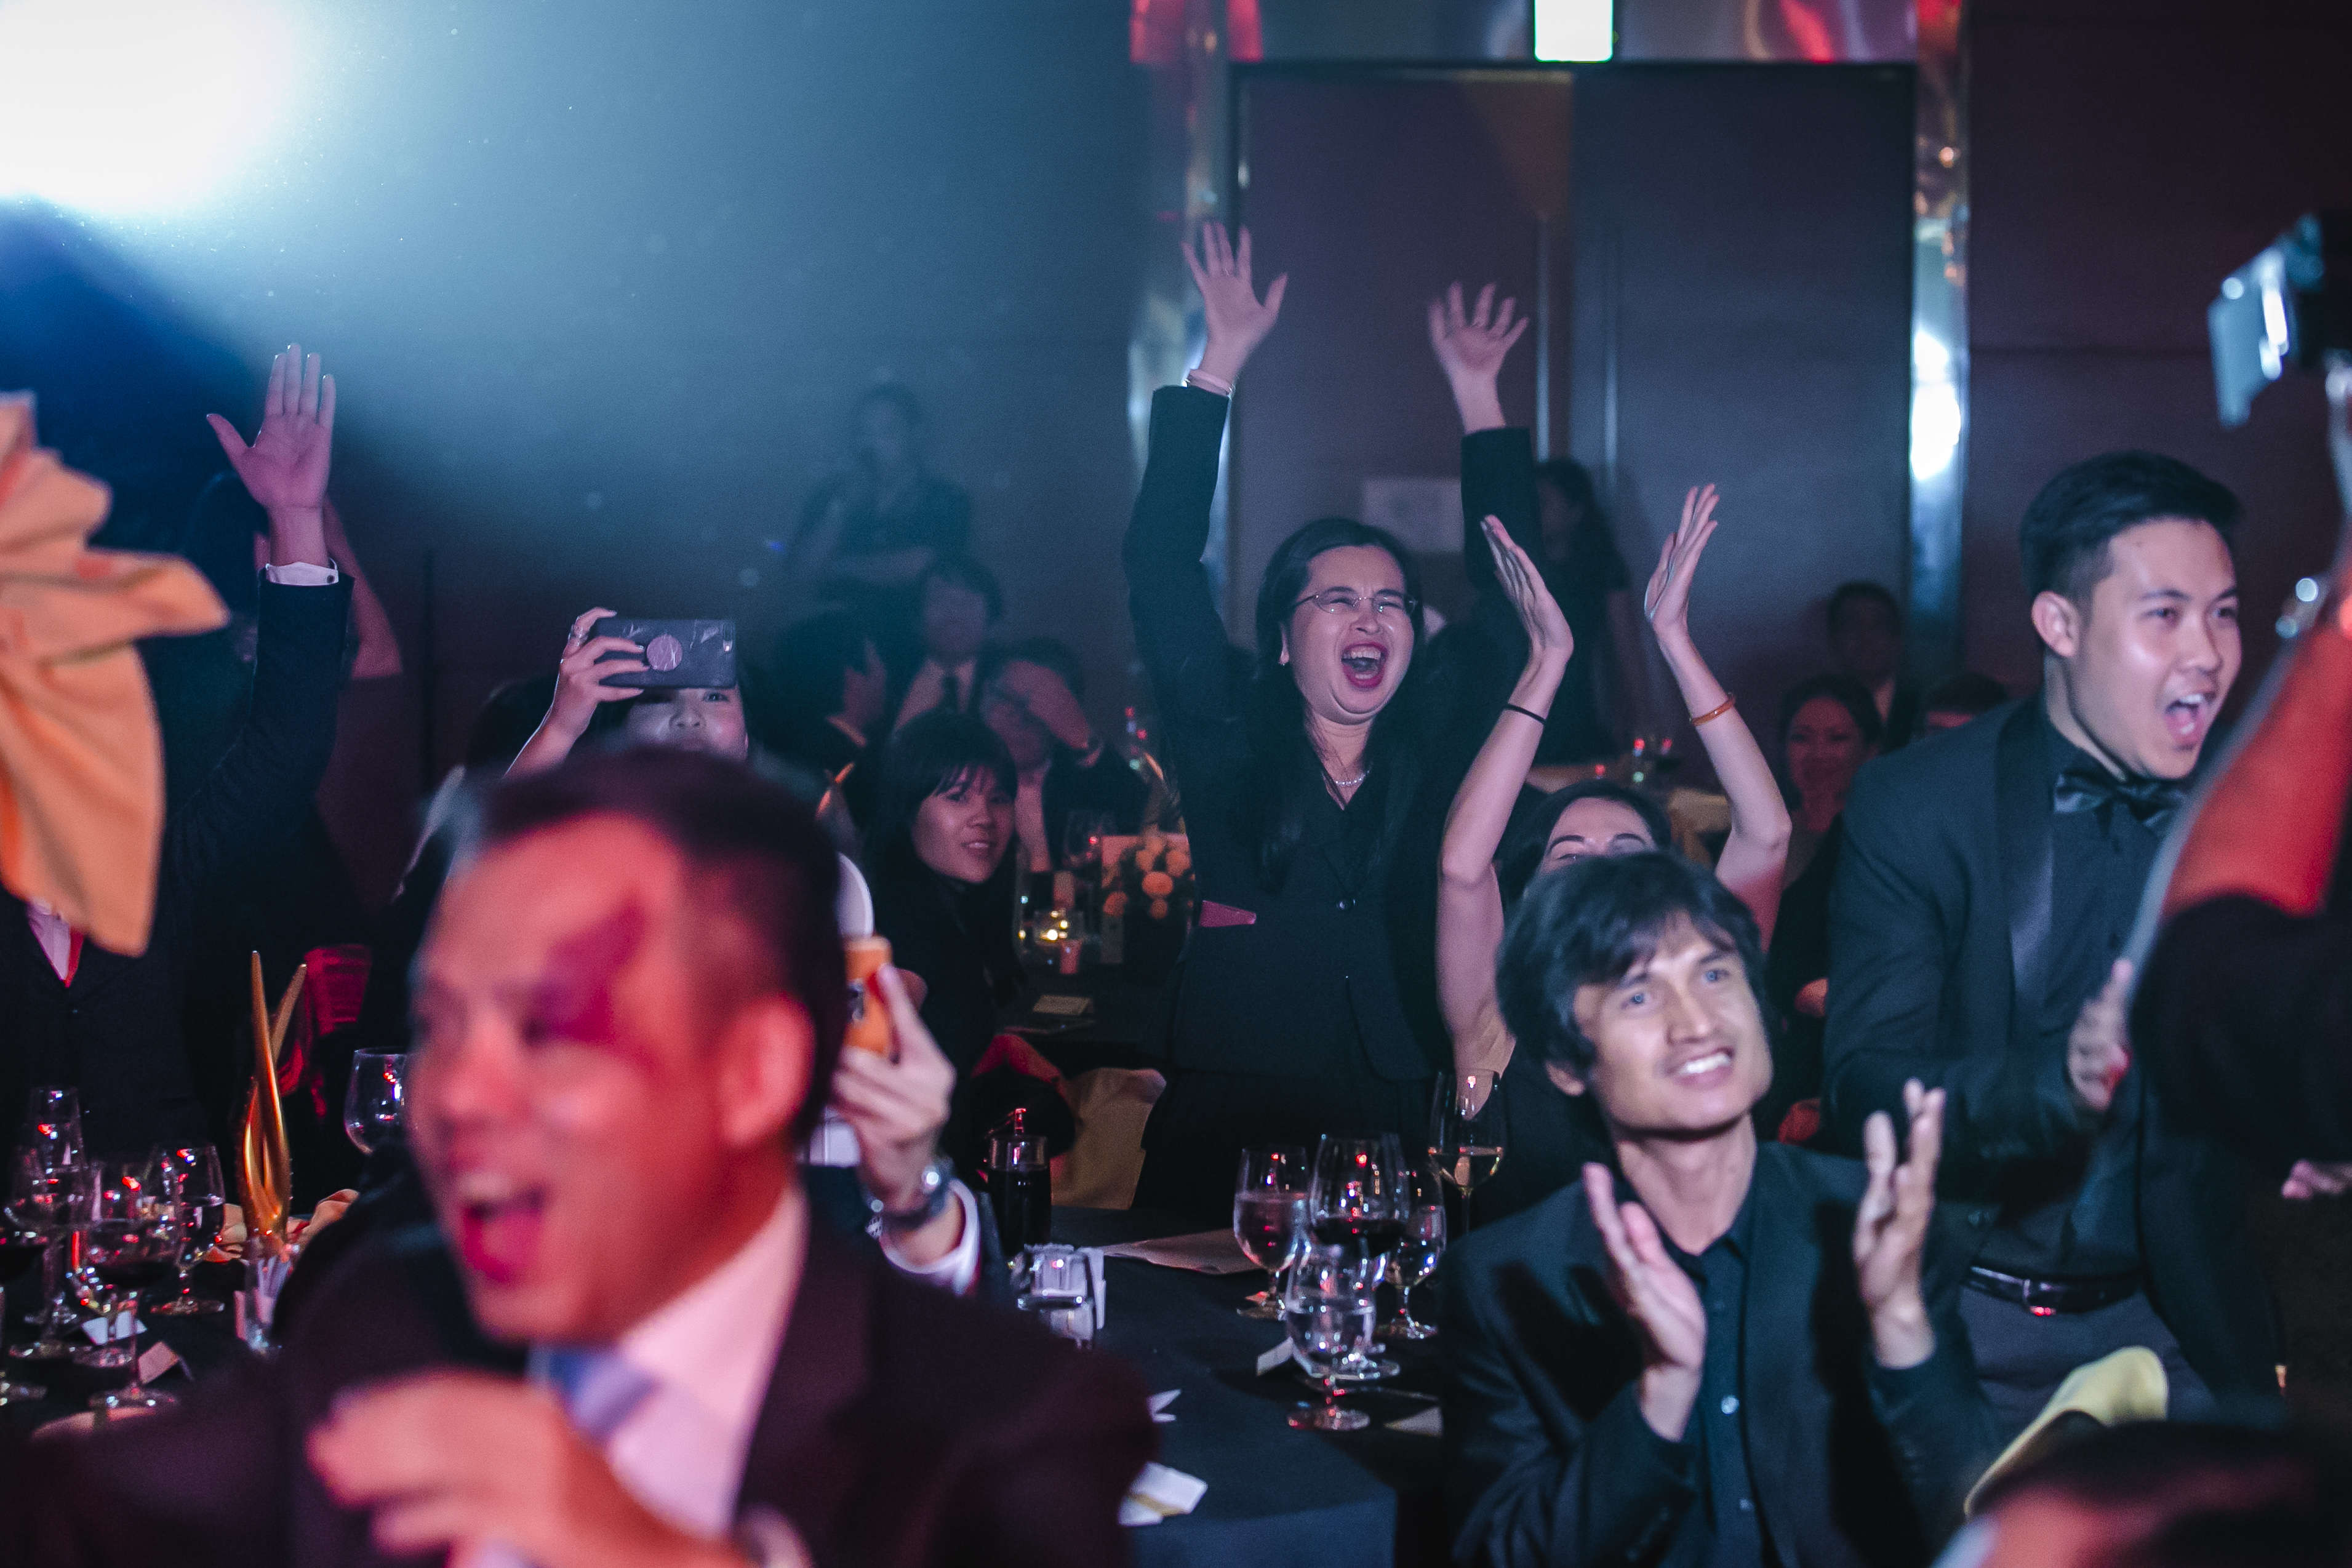 Delegation from CapitaLand Vietnam at the 2017 PropertyGuru Vietnam Property Awards gala dinner in HCMC